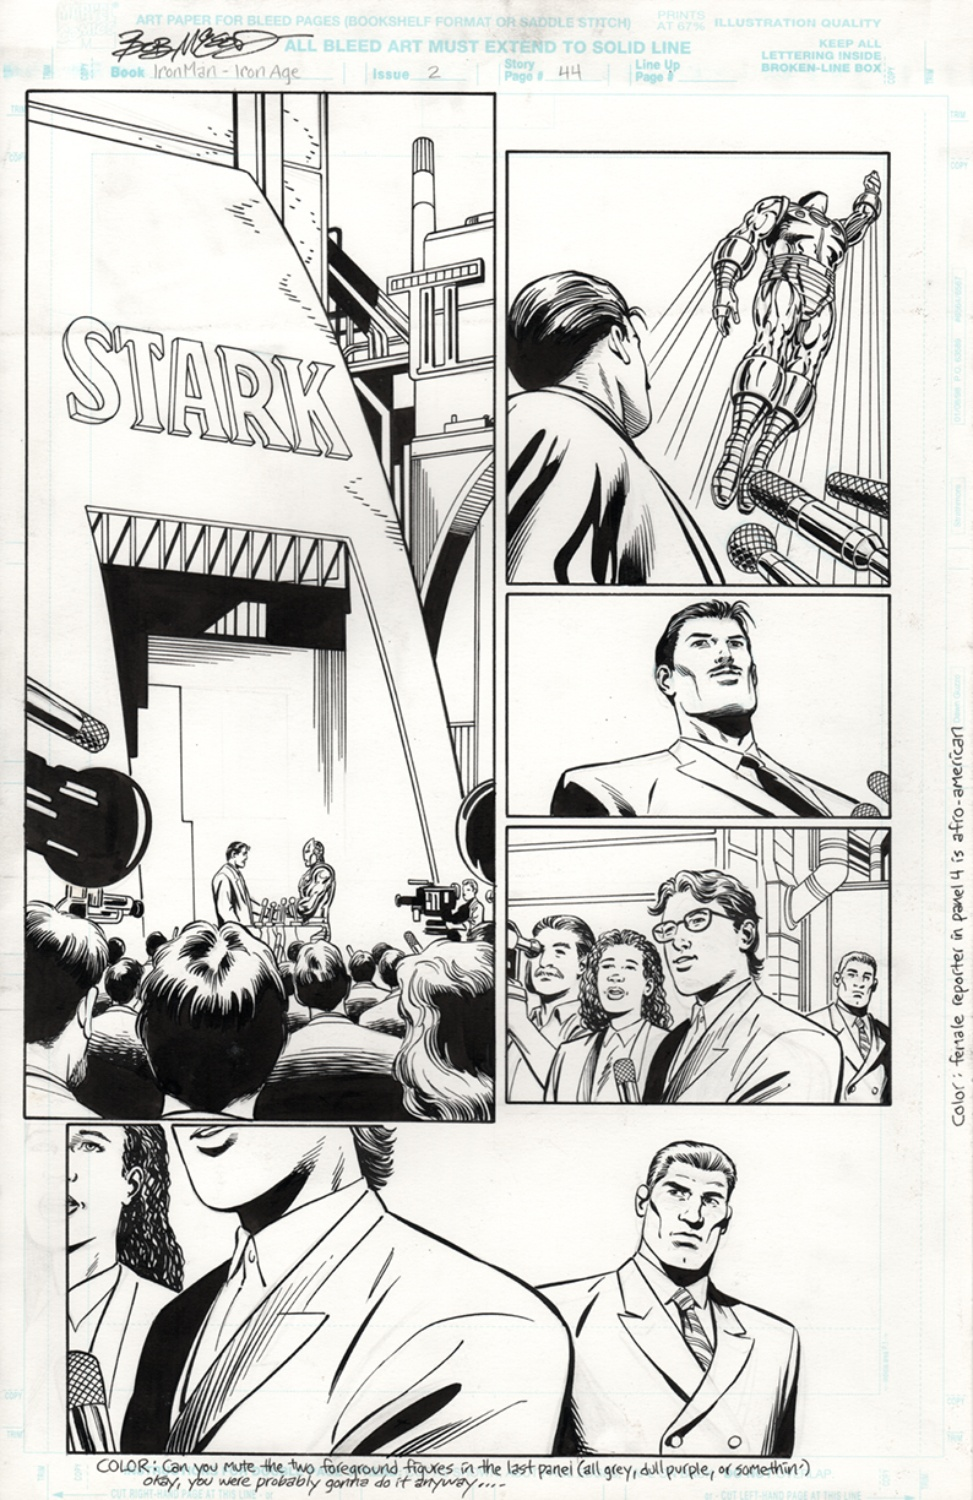 Original Art Page - Iron Man Bookshelf - 2 pg44